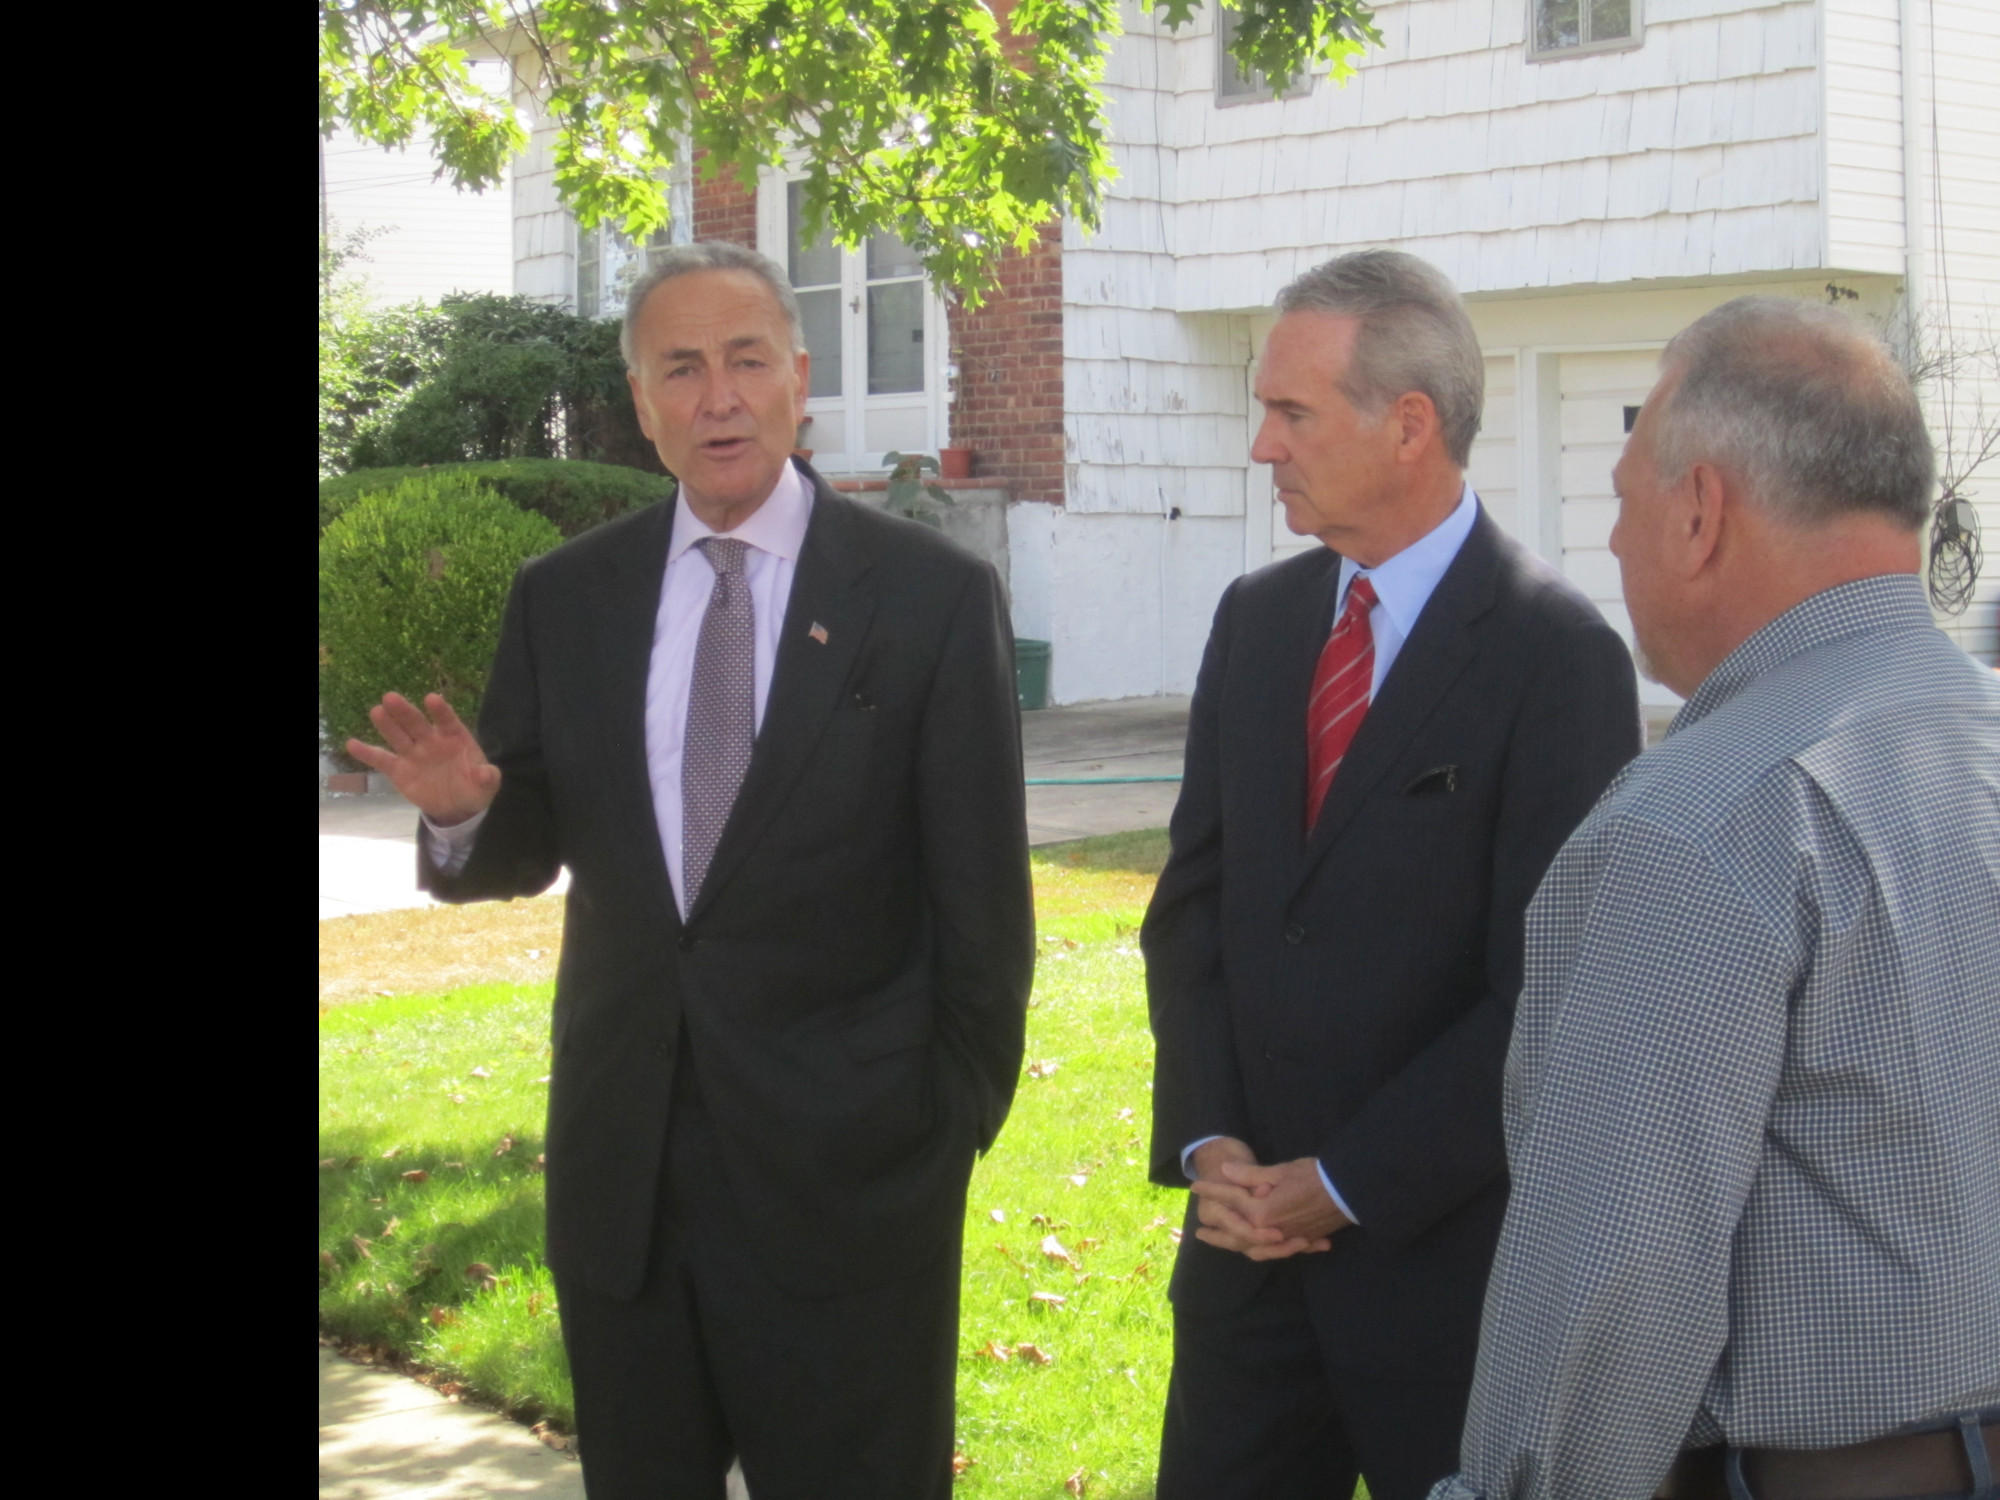 John Cameron Jr., chairman of the Long Island Regional Planning Council, center, joined Schumer at the news conference, and spoke briefly in support of the senator�s proposal.